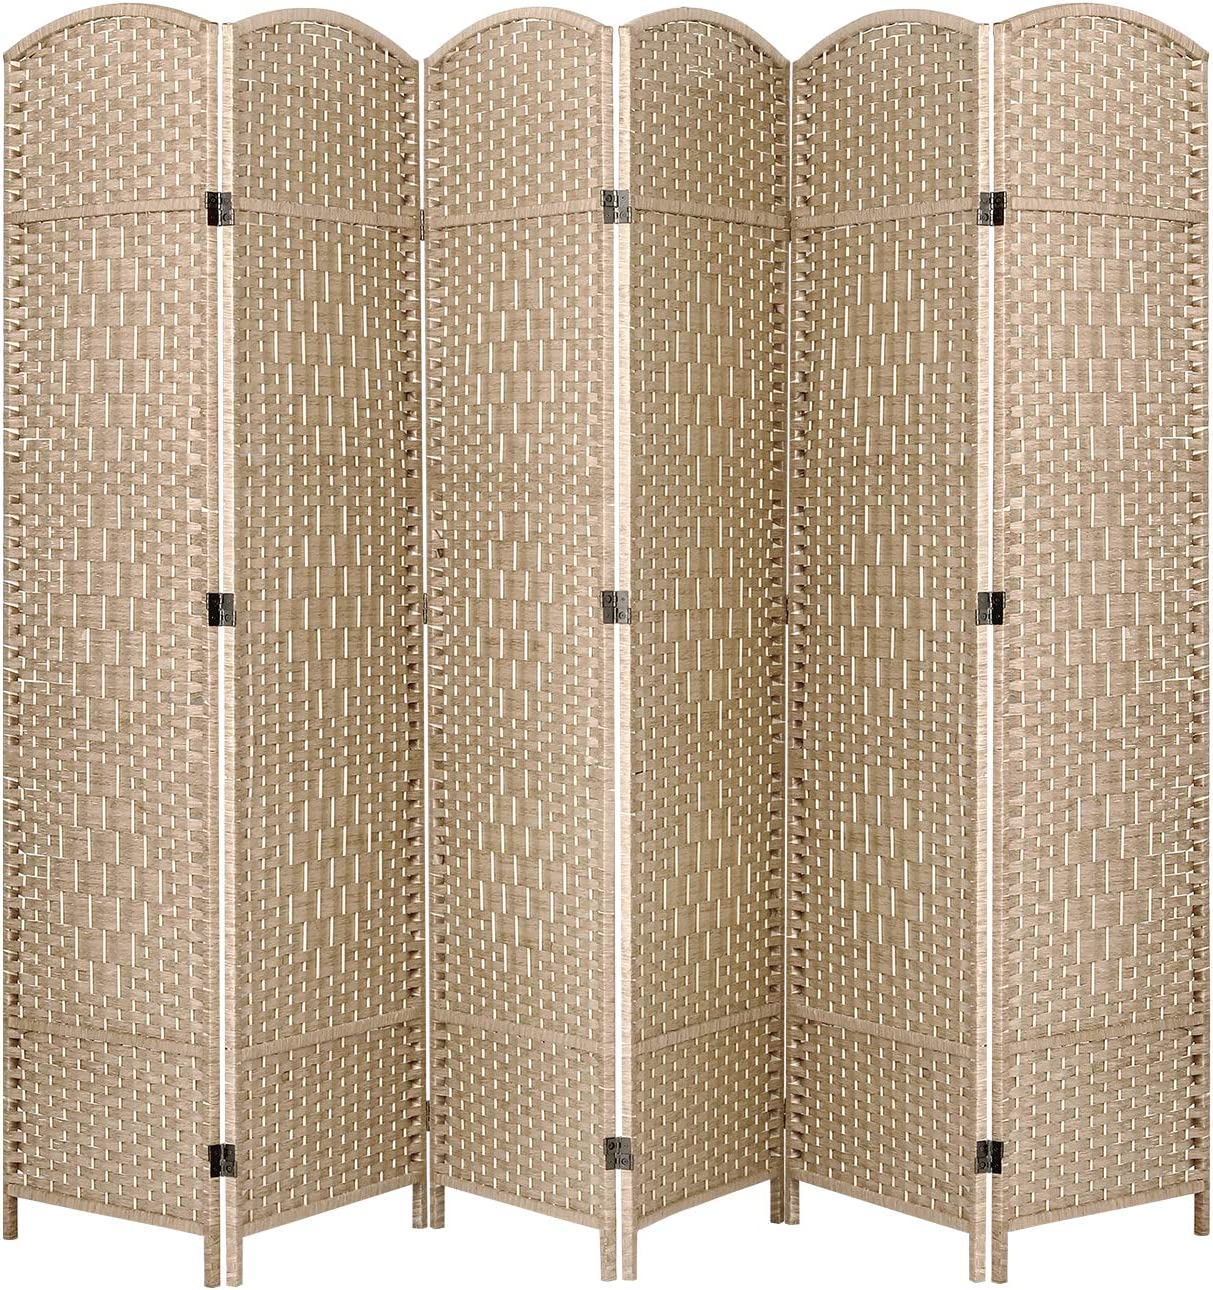 ORAF Room Divider 6 Limited price ft. Tall shop Wide Screens Privacy 19.69